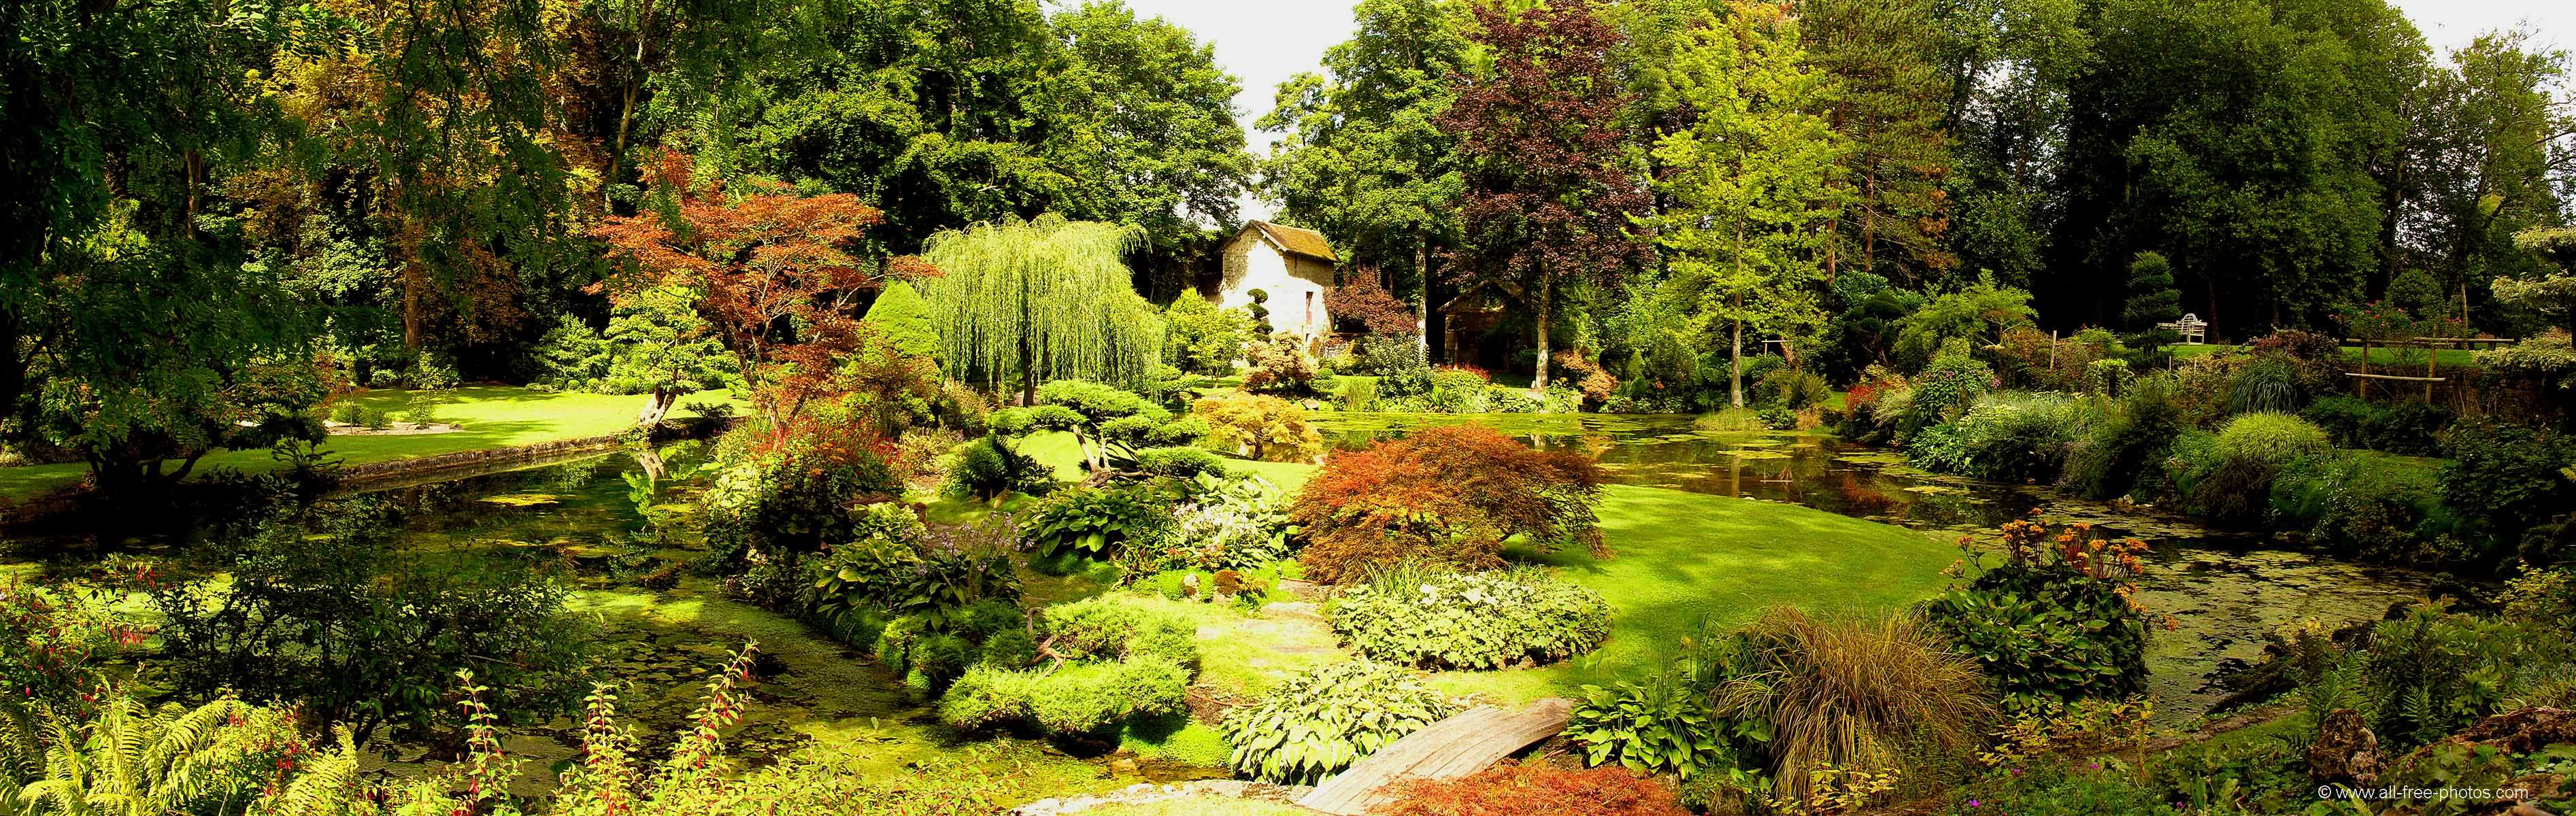 Japaneese garden - Castle of Courances - France